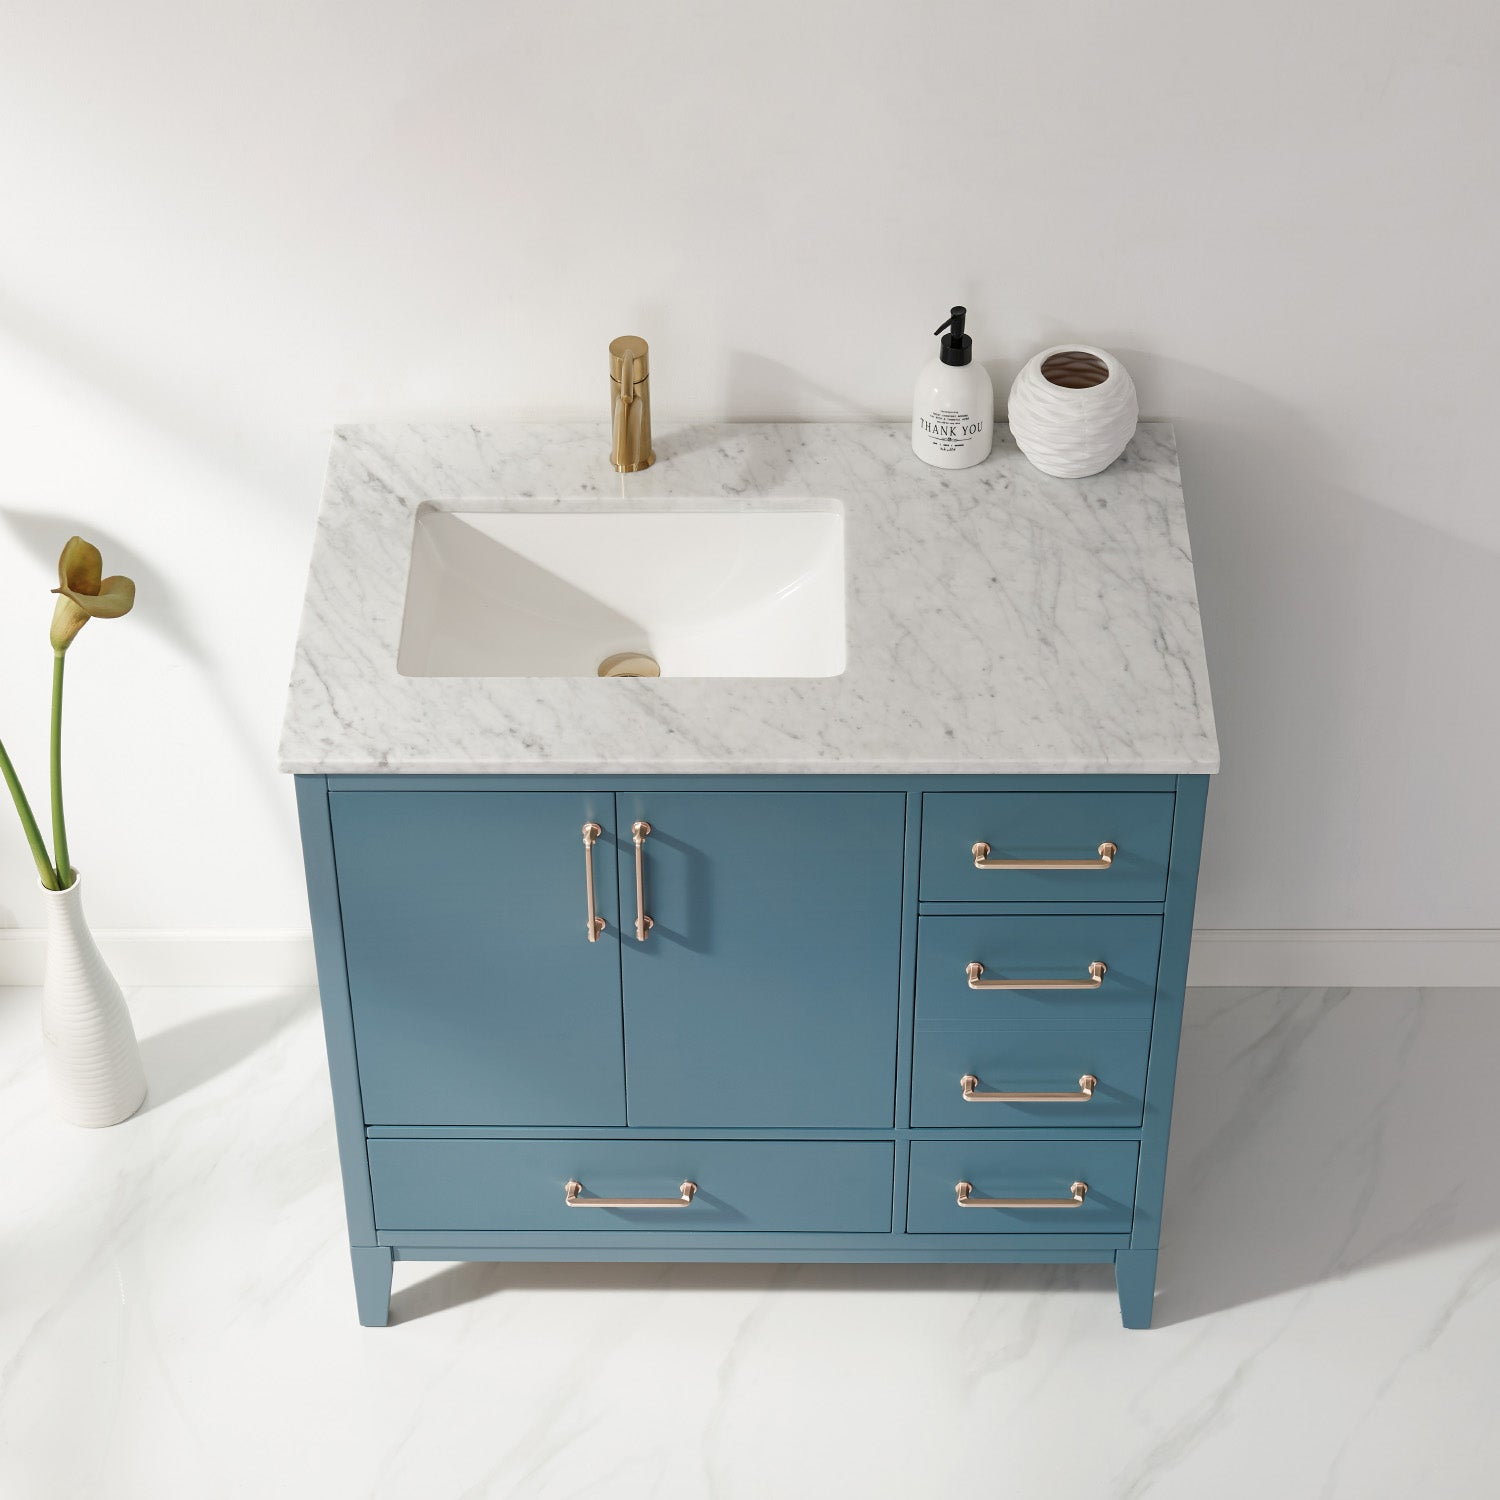 "Sutton 36"" Single Bathroom Vanity Set in Royal Green and Carrara White Marble Countertop without Mirror"